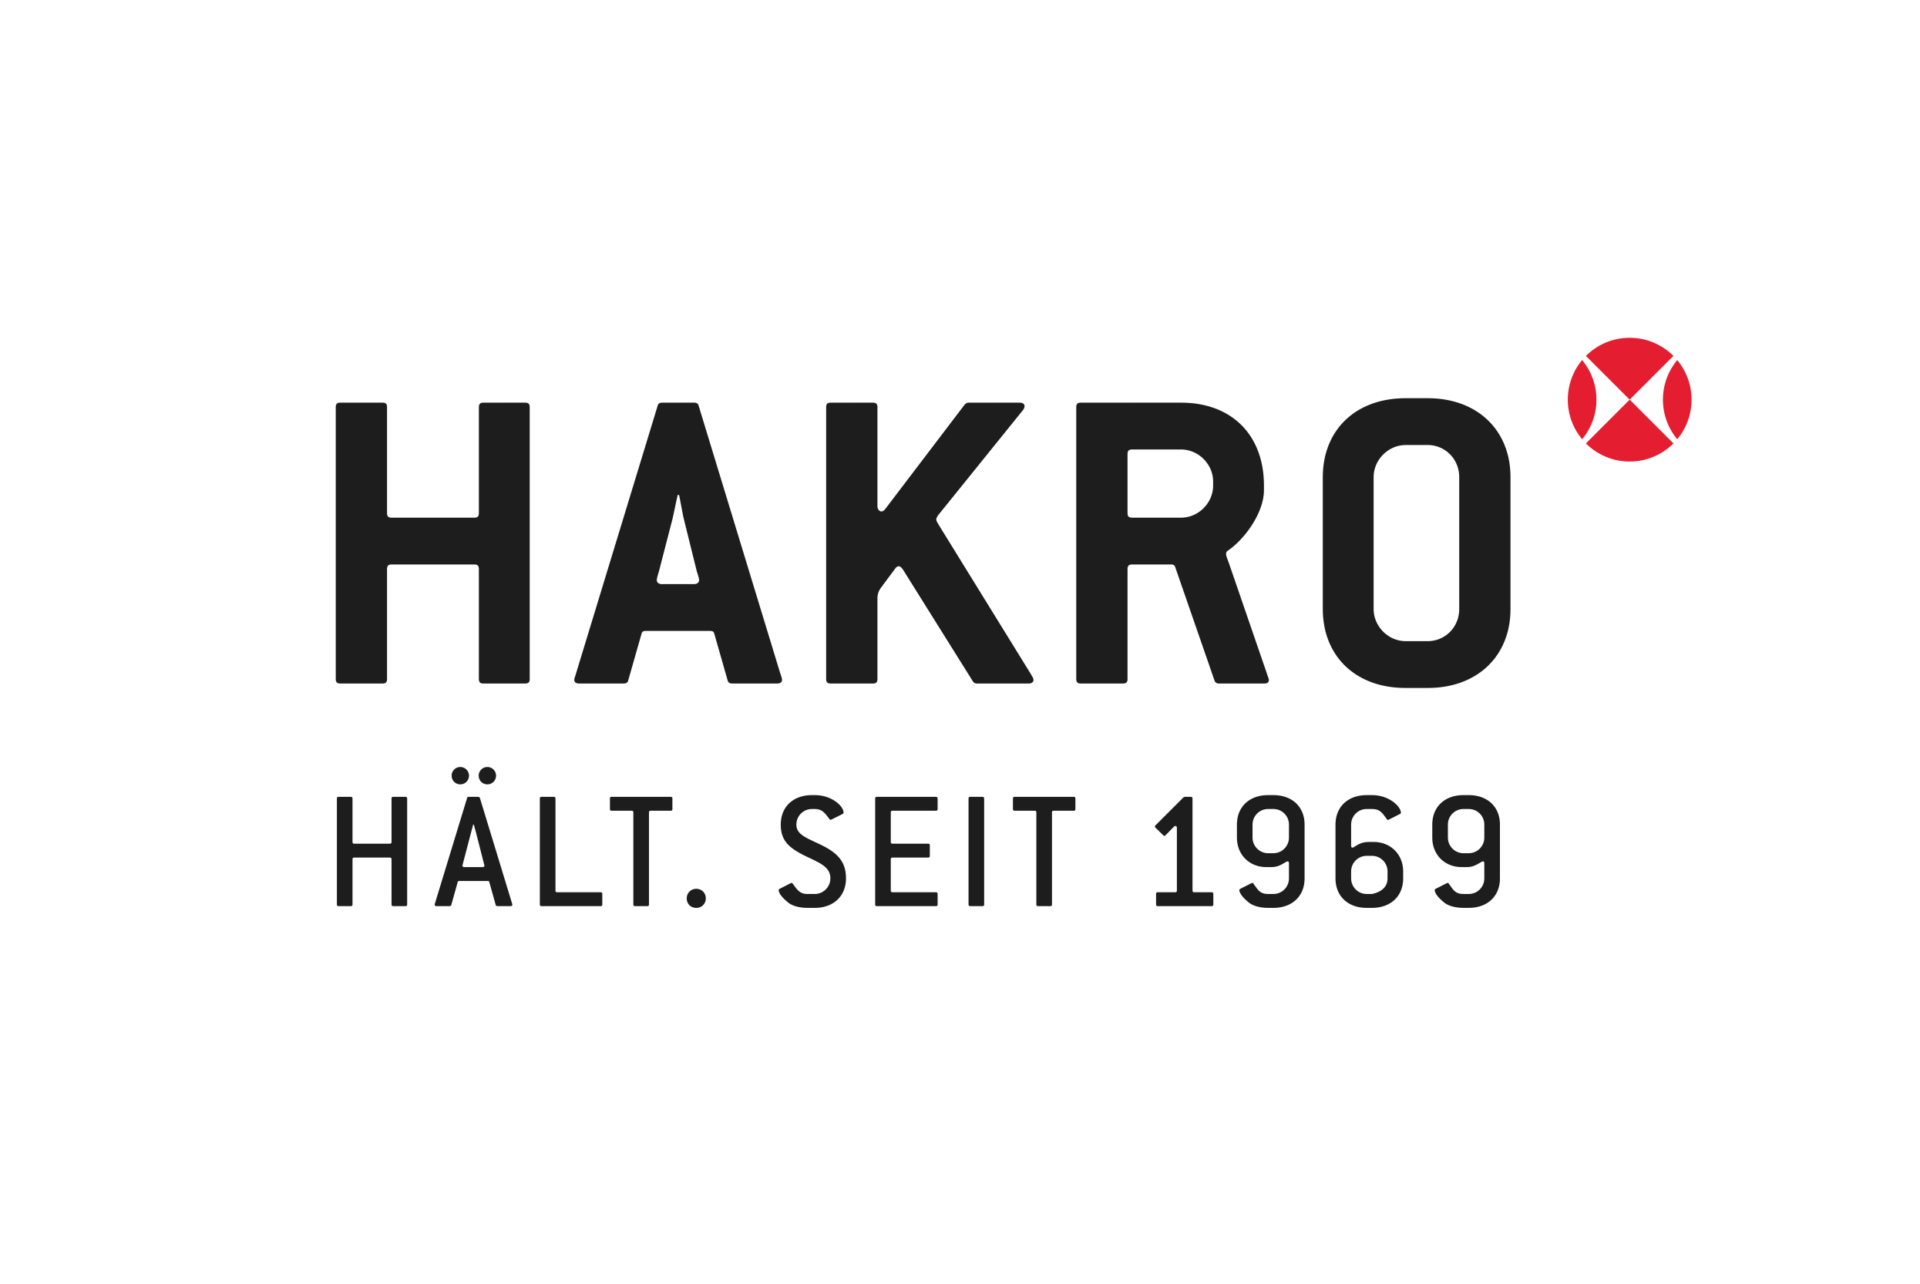 https://cottonmadeinafrica.org/wp-content/uploads/HAKRO-Logo.png